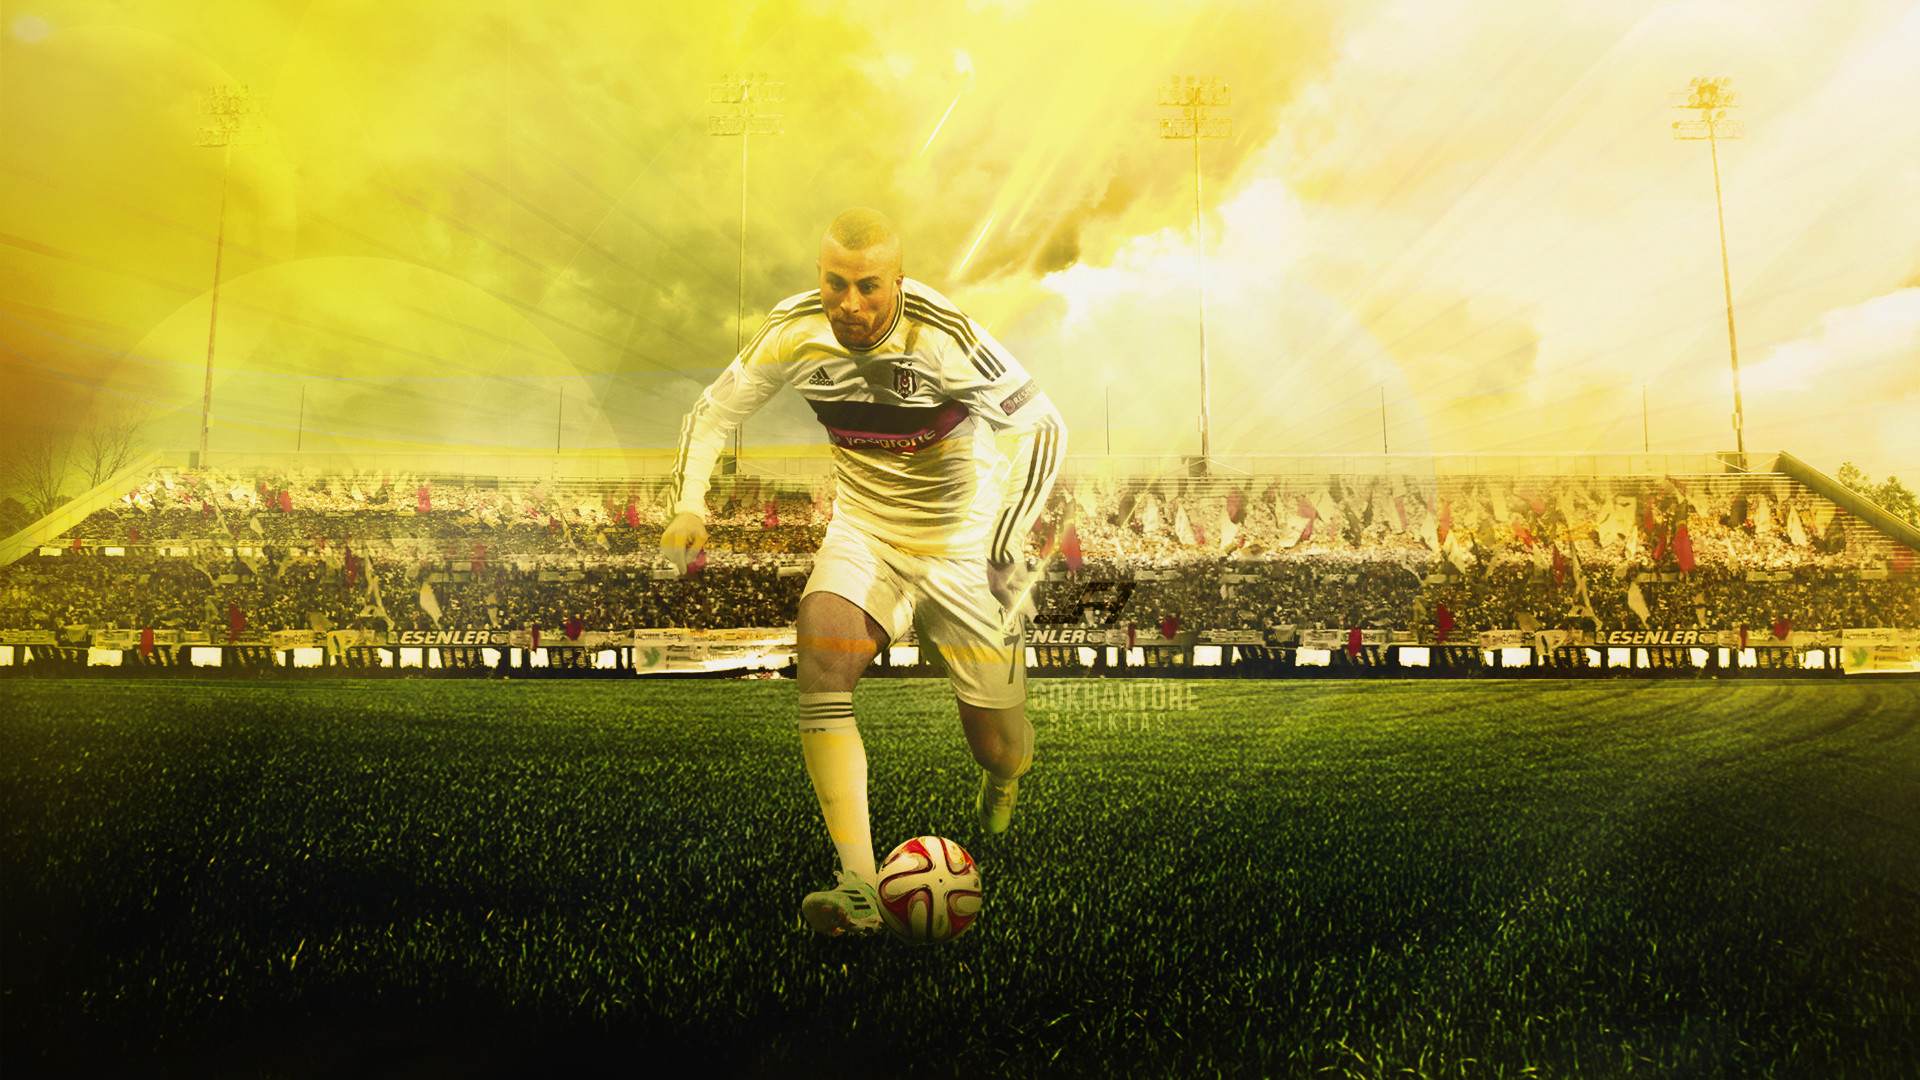 Res: 1920x1080, Gokhan Tore Wallpaper by SemihAydogdu Gokhan Tore Wallpaper by SemihAydogdu